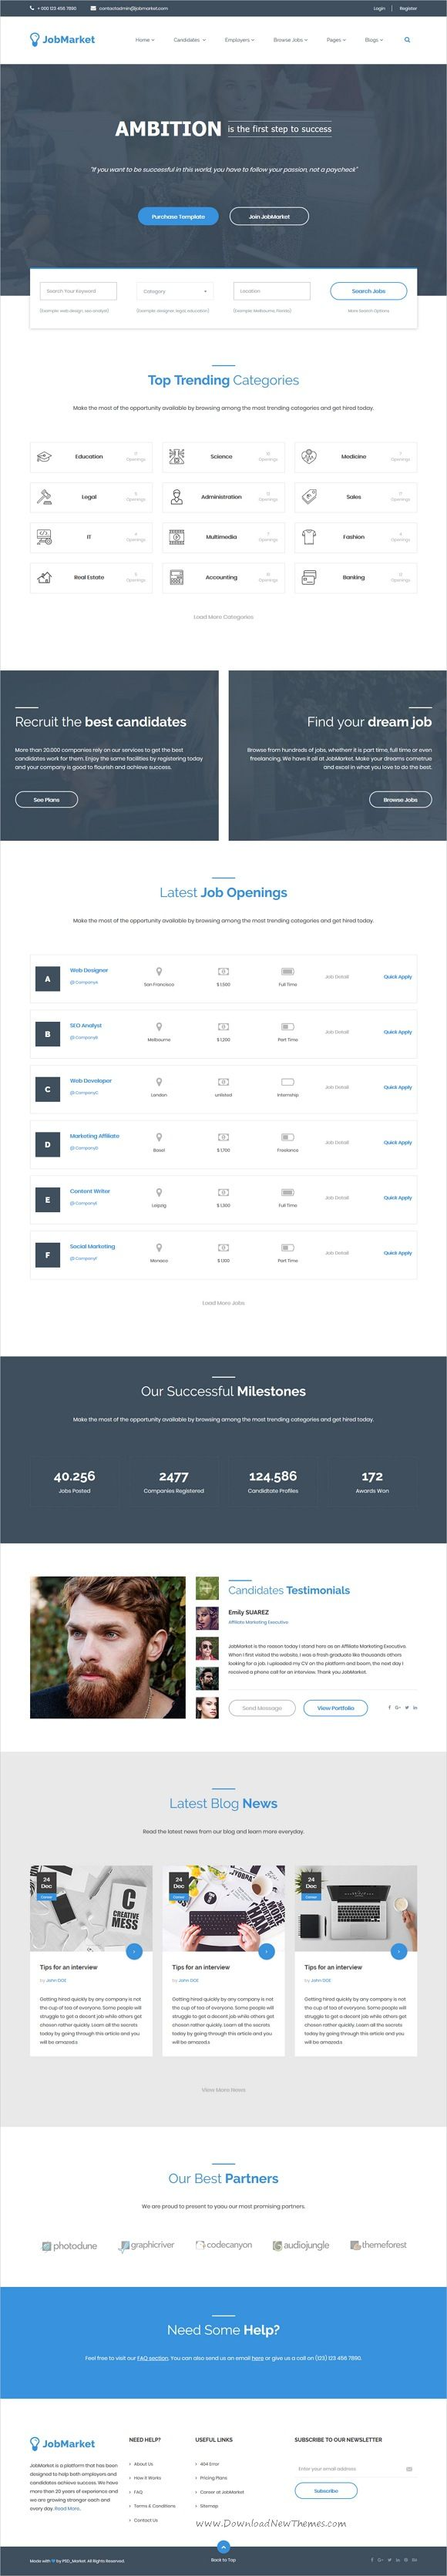 JobMarket is clean and modern design 3in1 responsive #HTML5 template for #Job board and #JobSearch portal website download now..